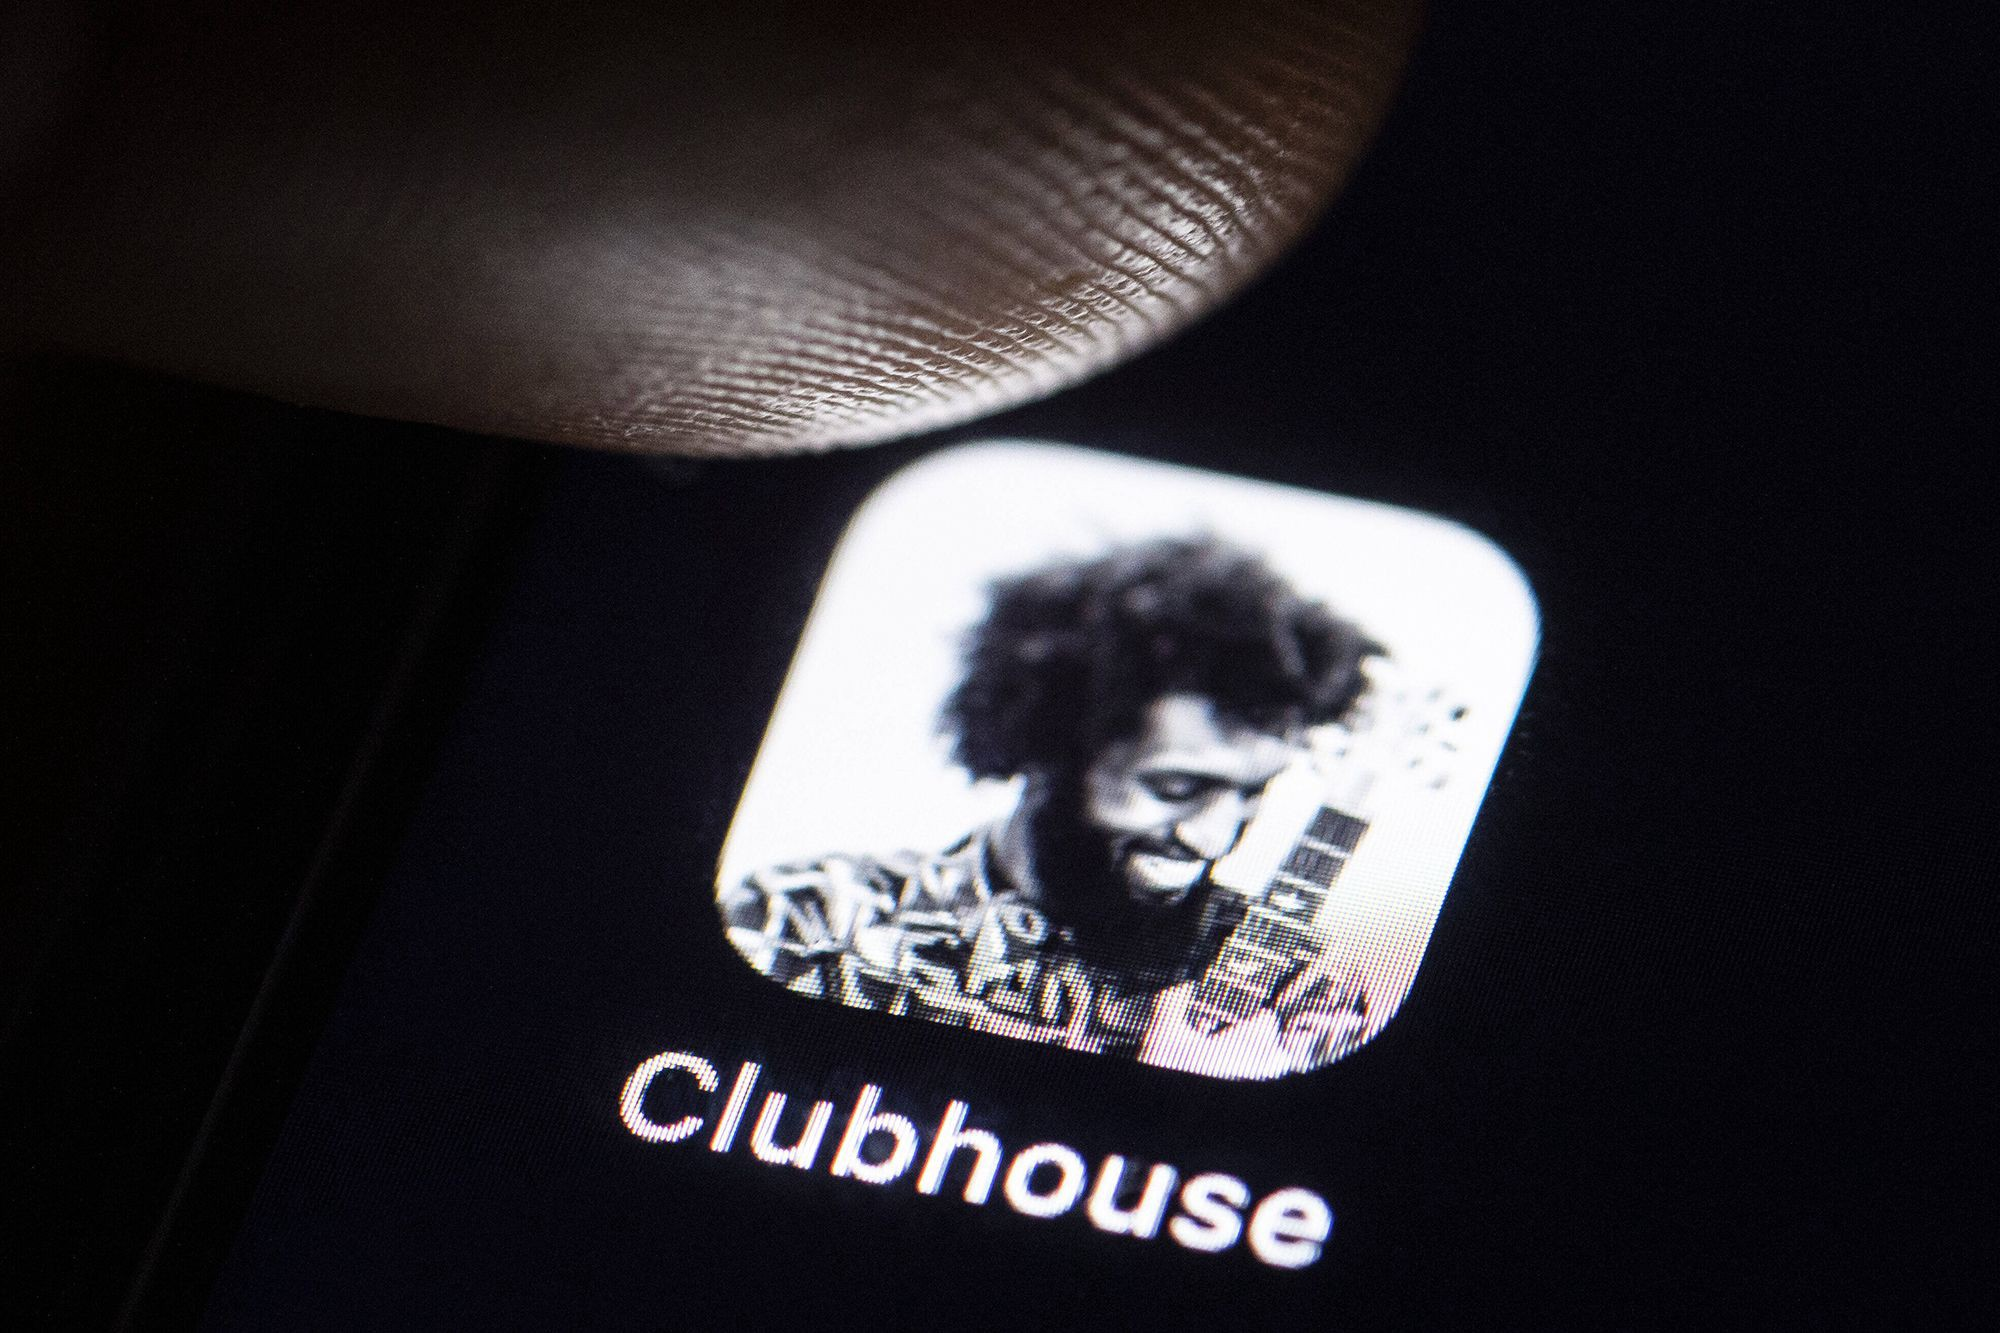 o-aplicativo-clubhouse-para-android-esta-finalmente-disponivel-na-play-store